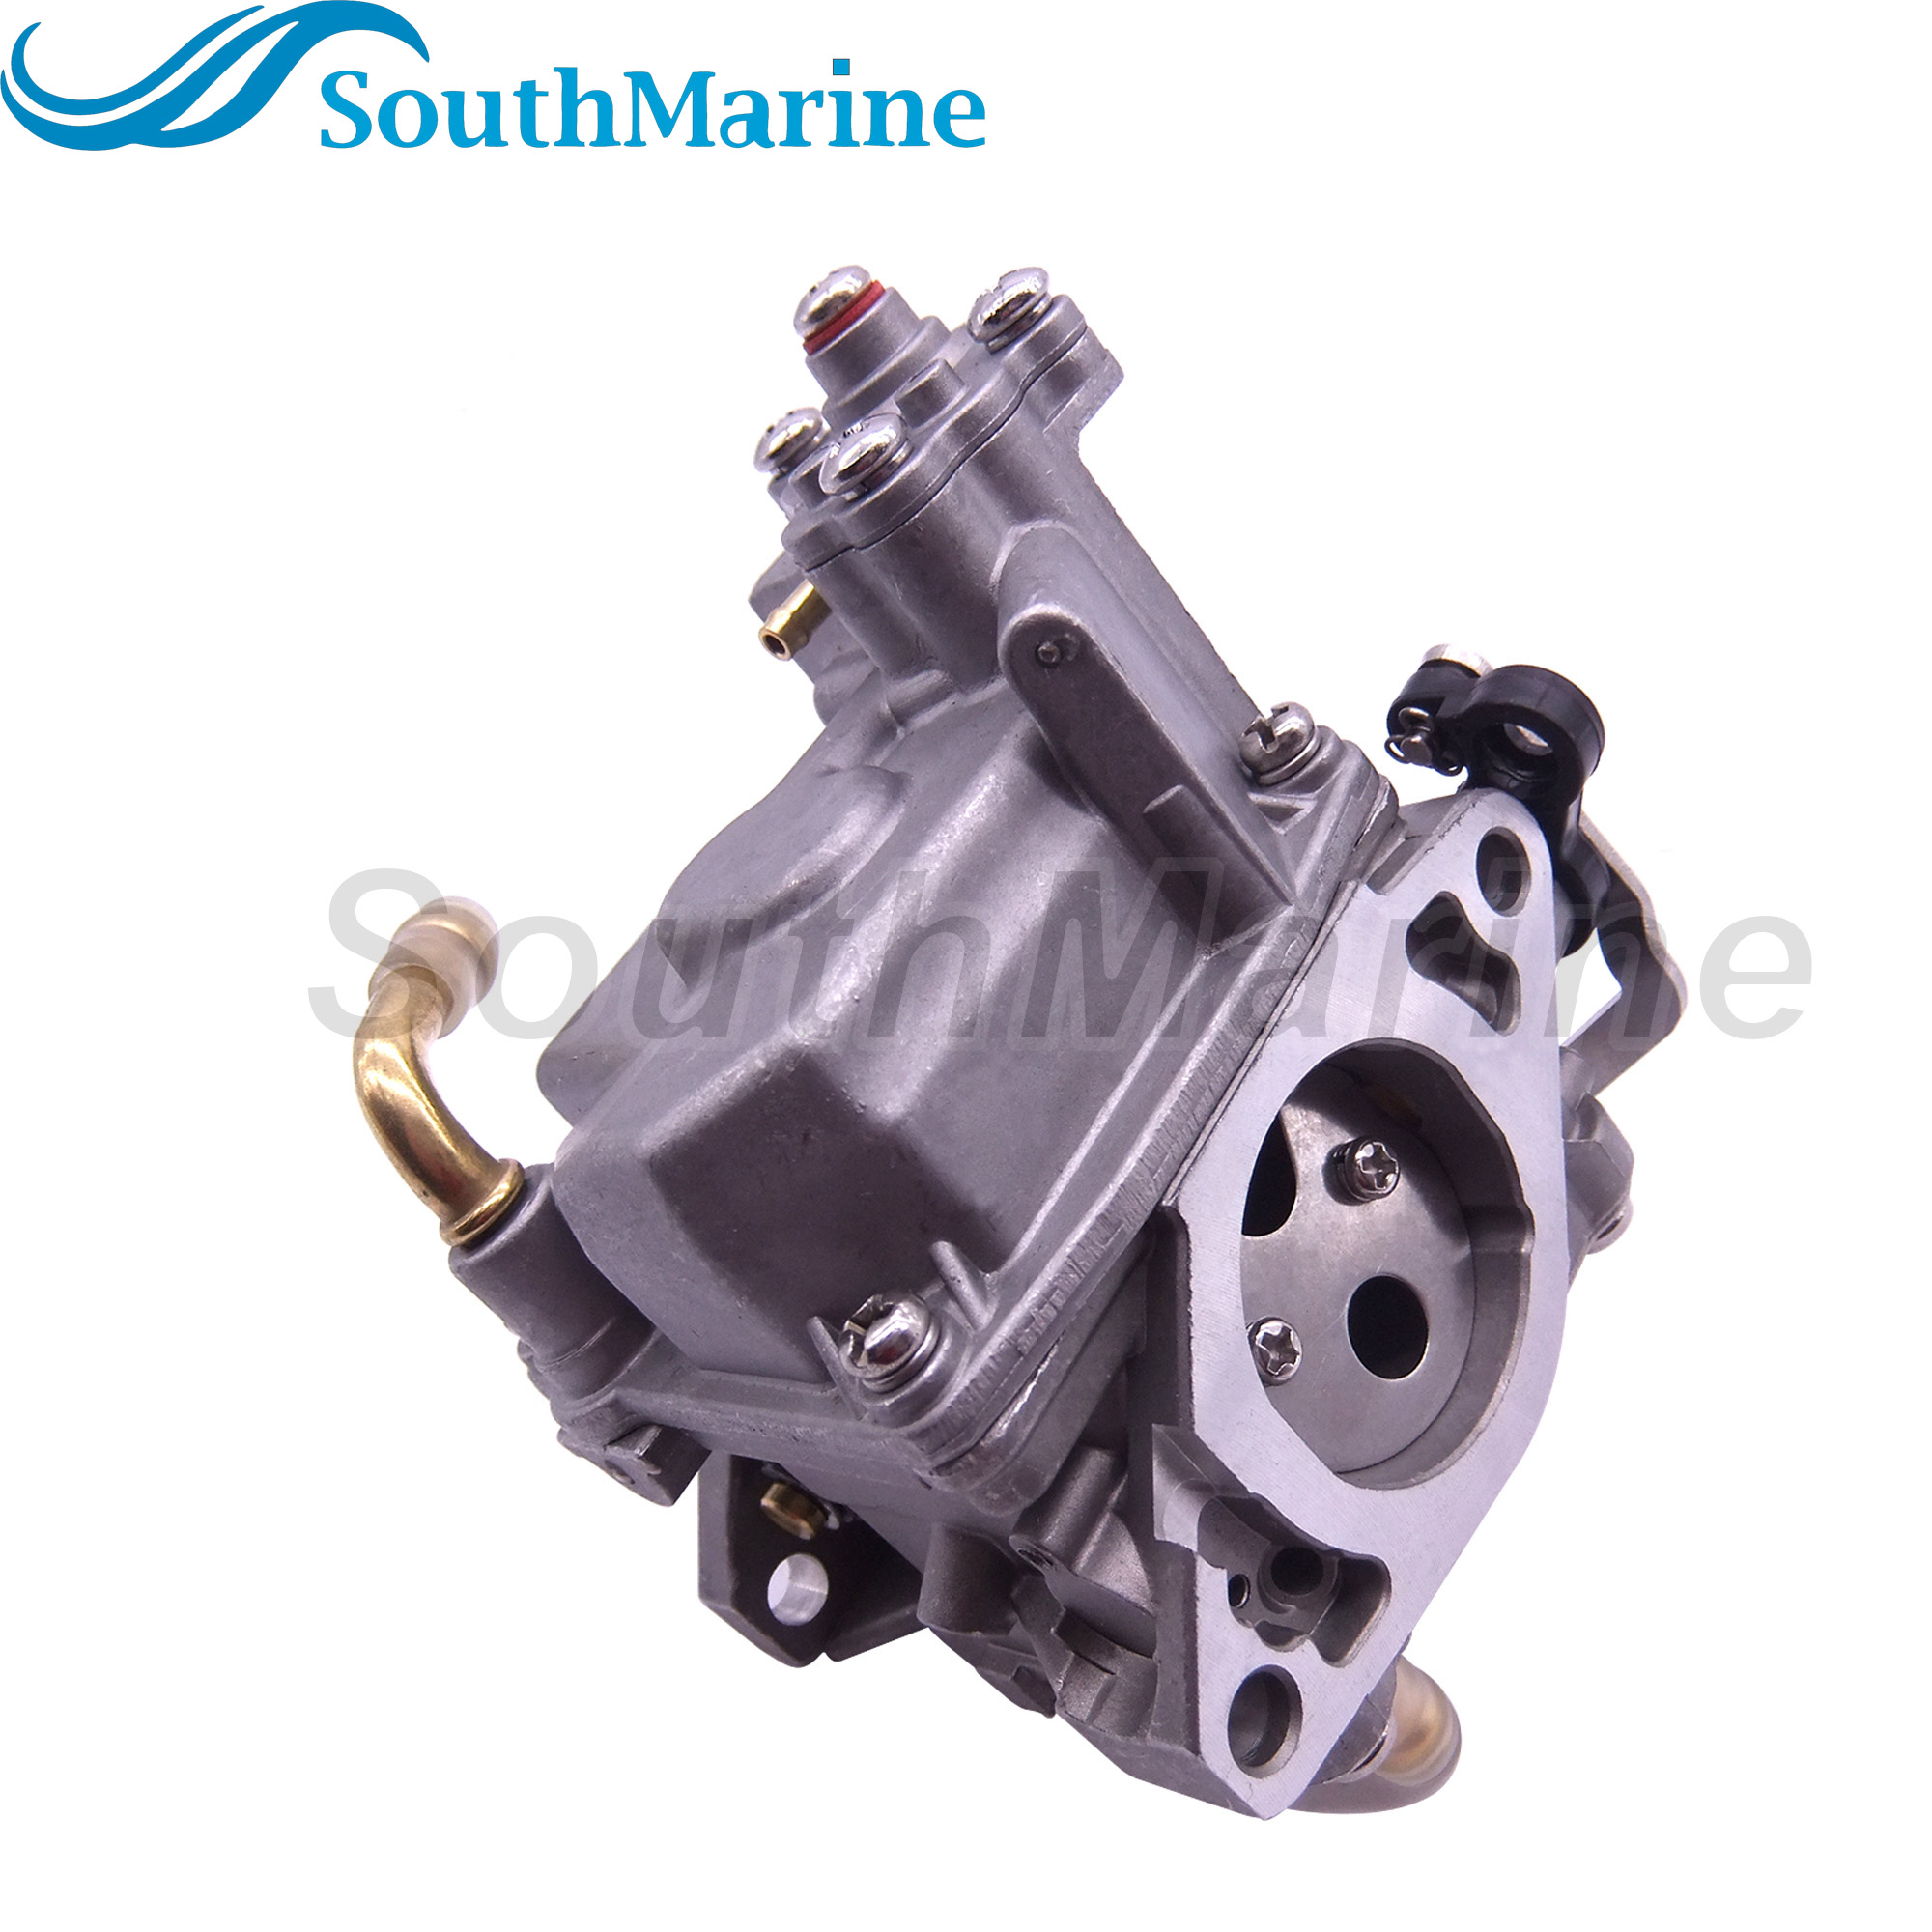 Boat Motor 853720T15 853720T21 8M0109535 Carburetor Assembly For Mercury Mariner Outboard Engine 15HP 4-stroke, Remote Model